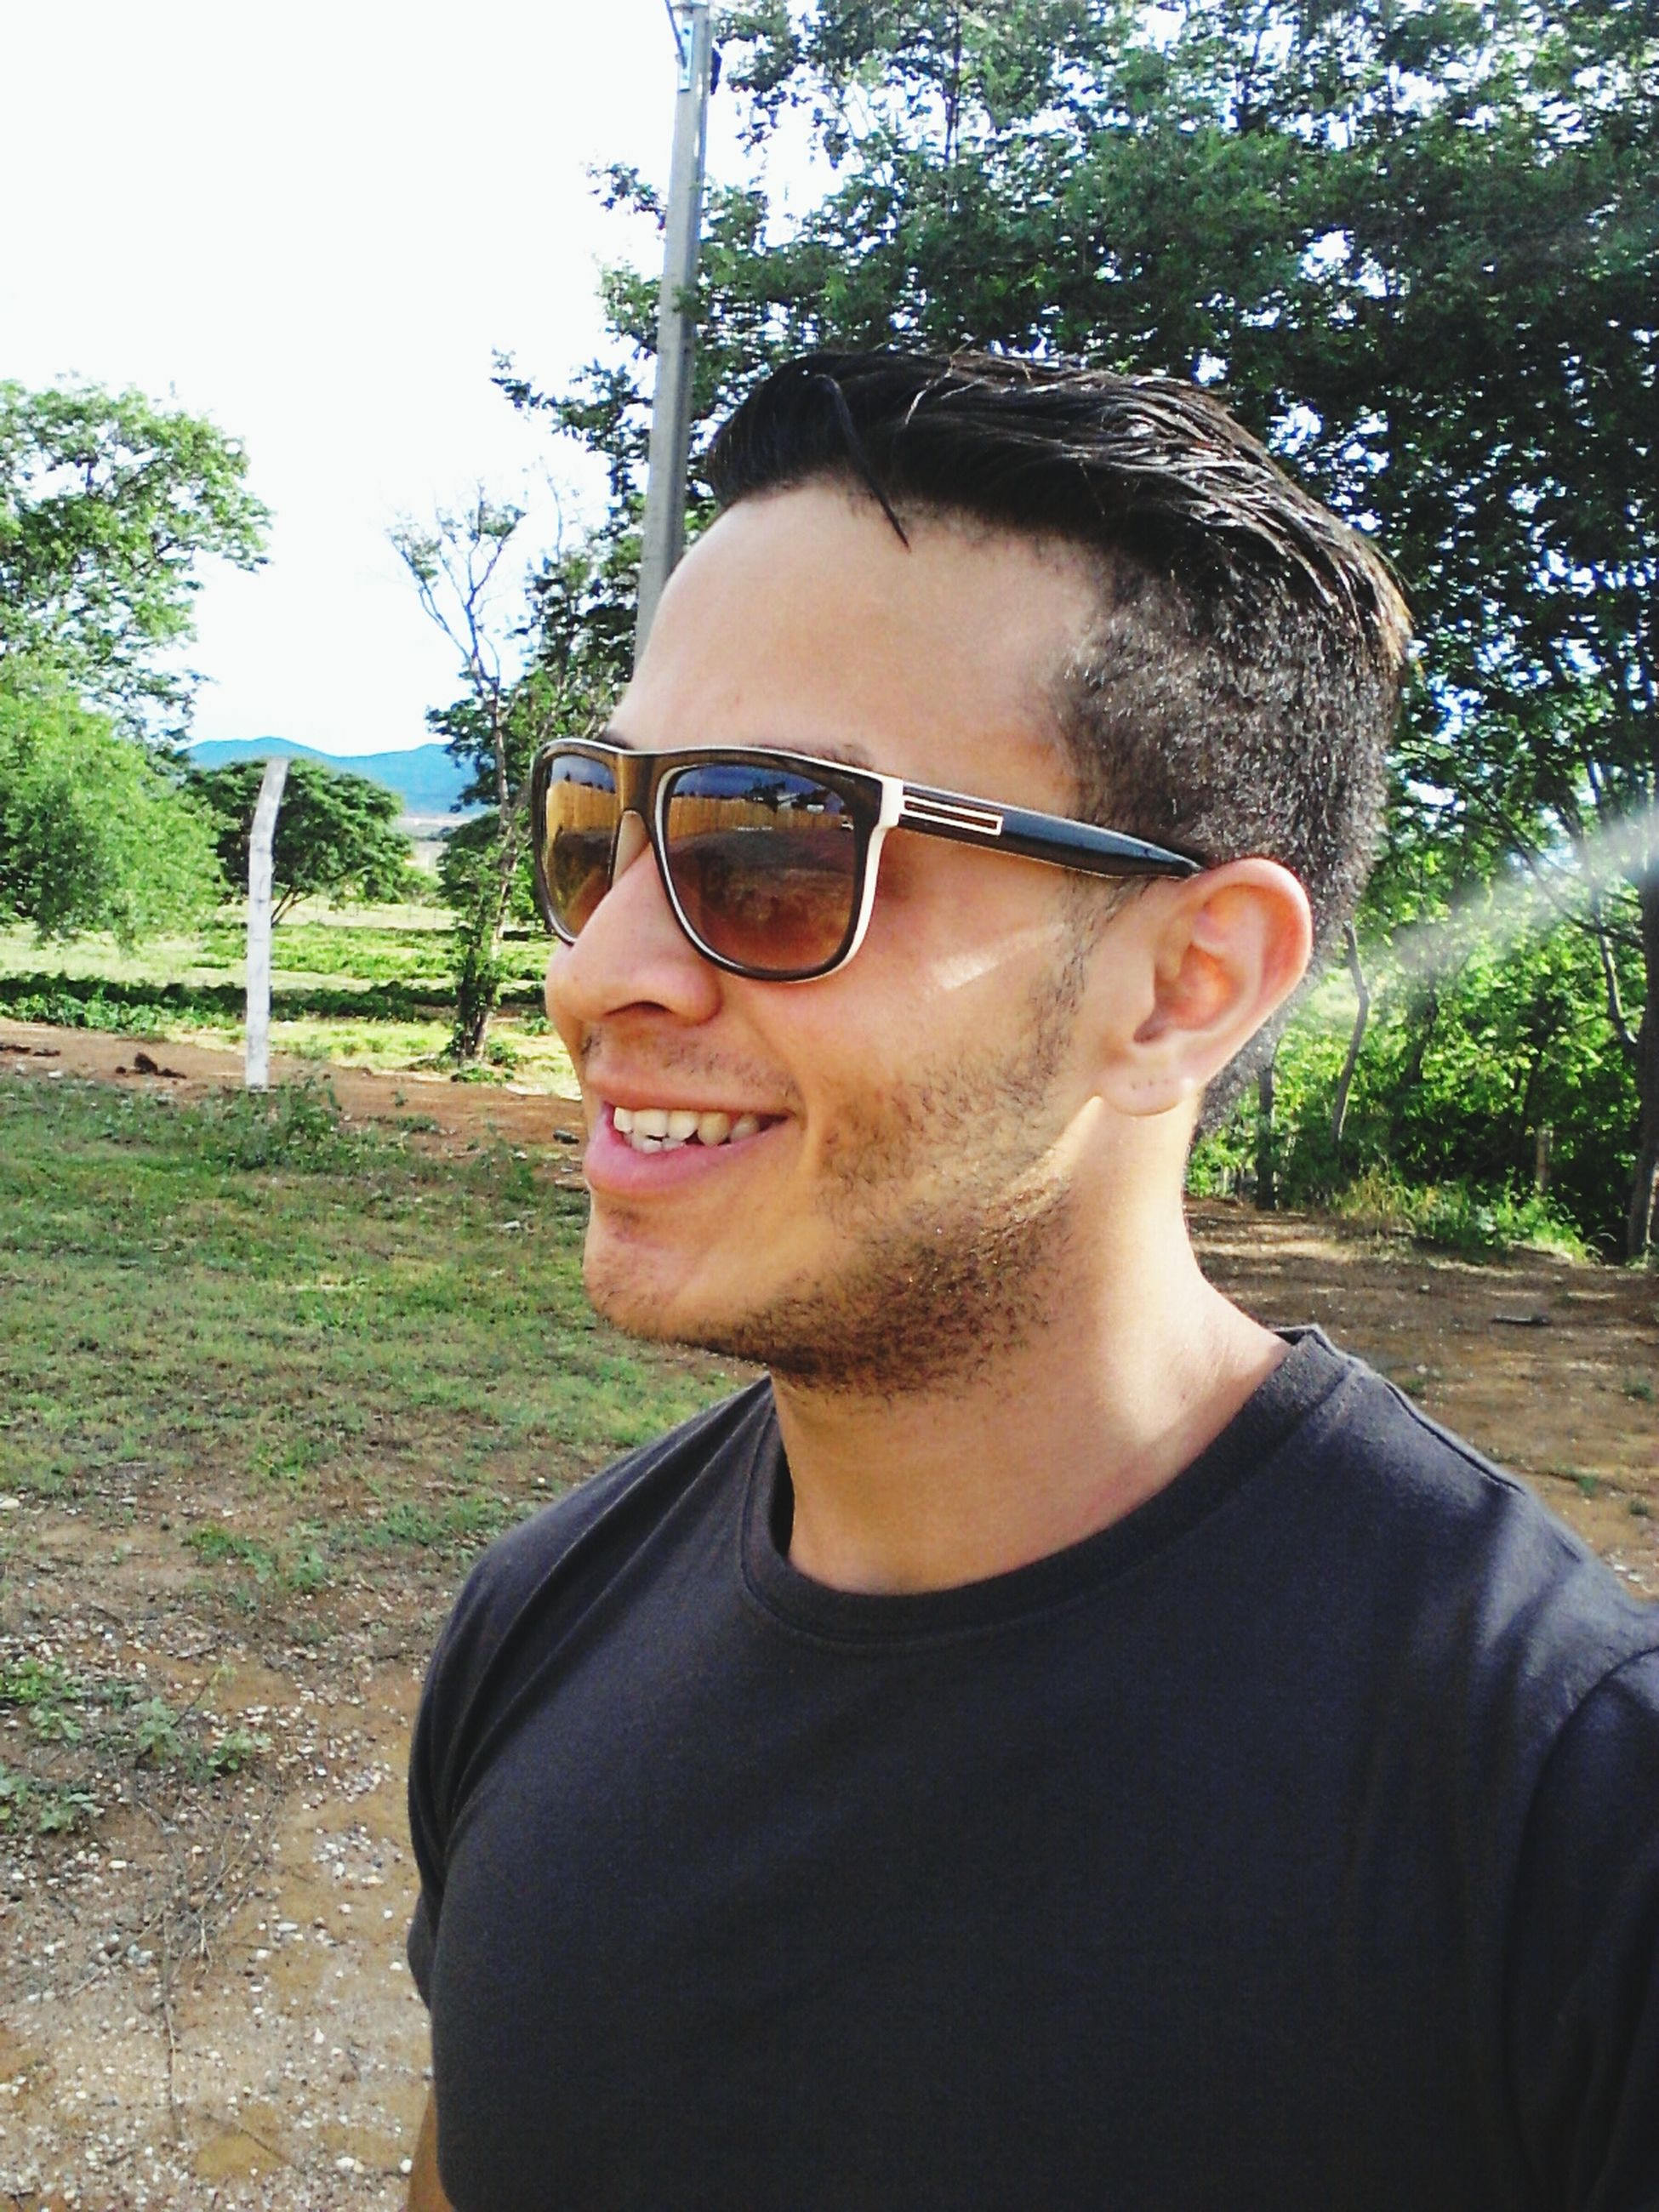 portrait, looking at camera, young adult, person, lifestyles, young men, front view, sunglasses, leisure activity, headshot, casual clothing, smiling, mid adult, mid adult men, head and shoulders, handsome, happiness, serious